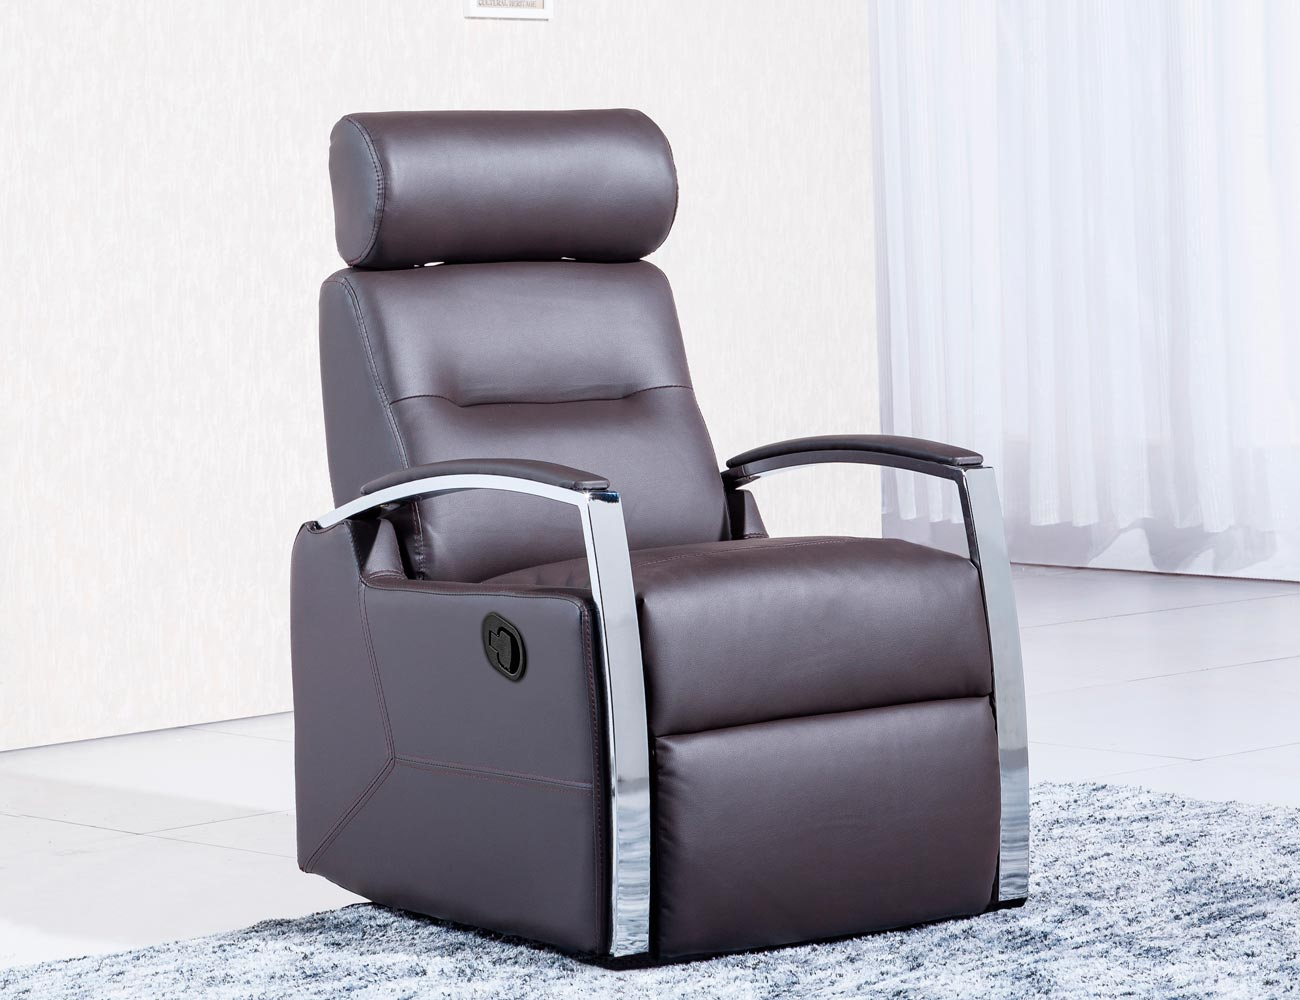 Sillon relax palanca simil piel chocolate